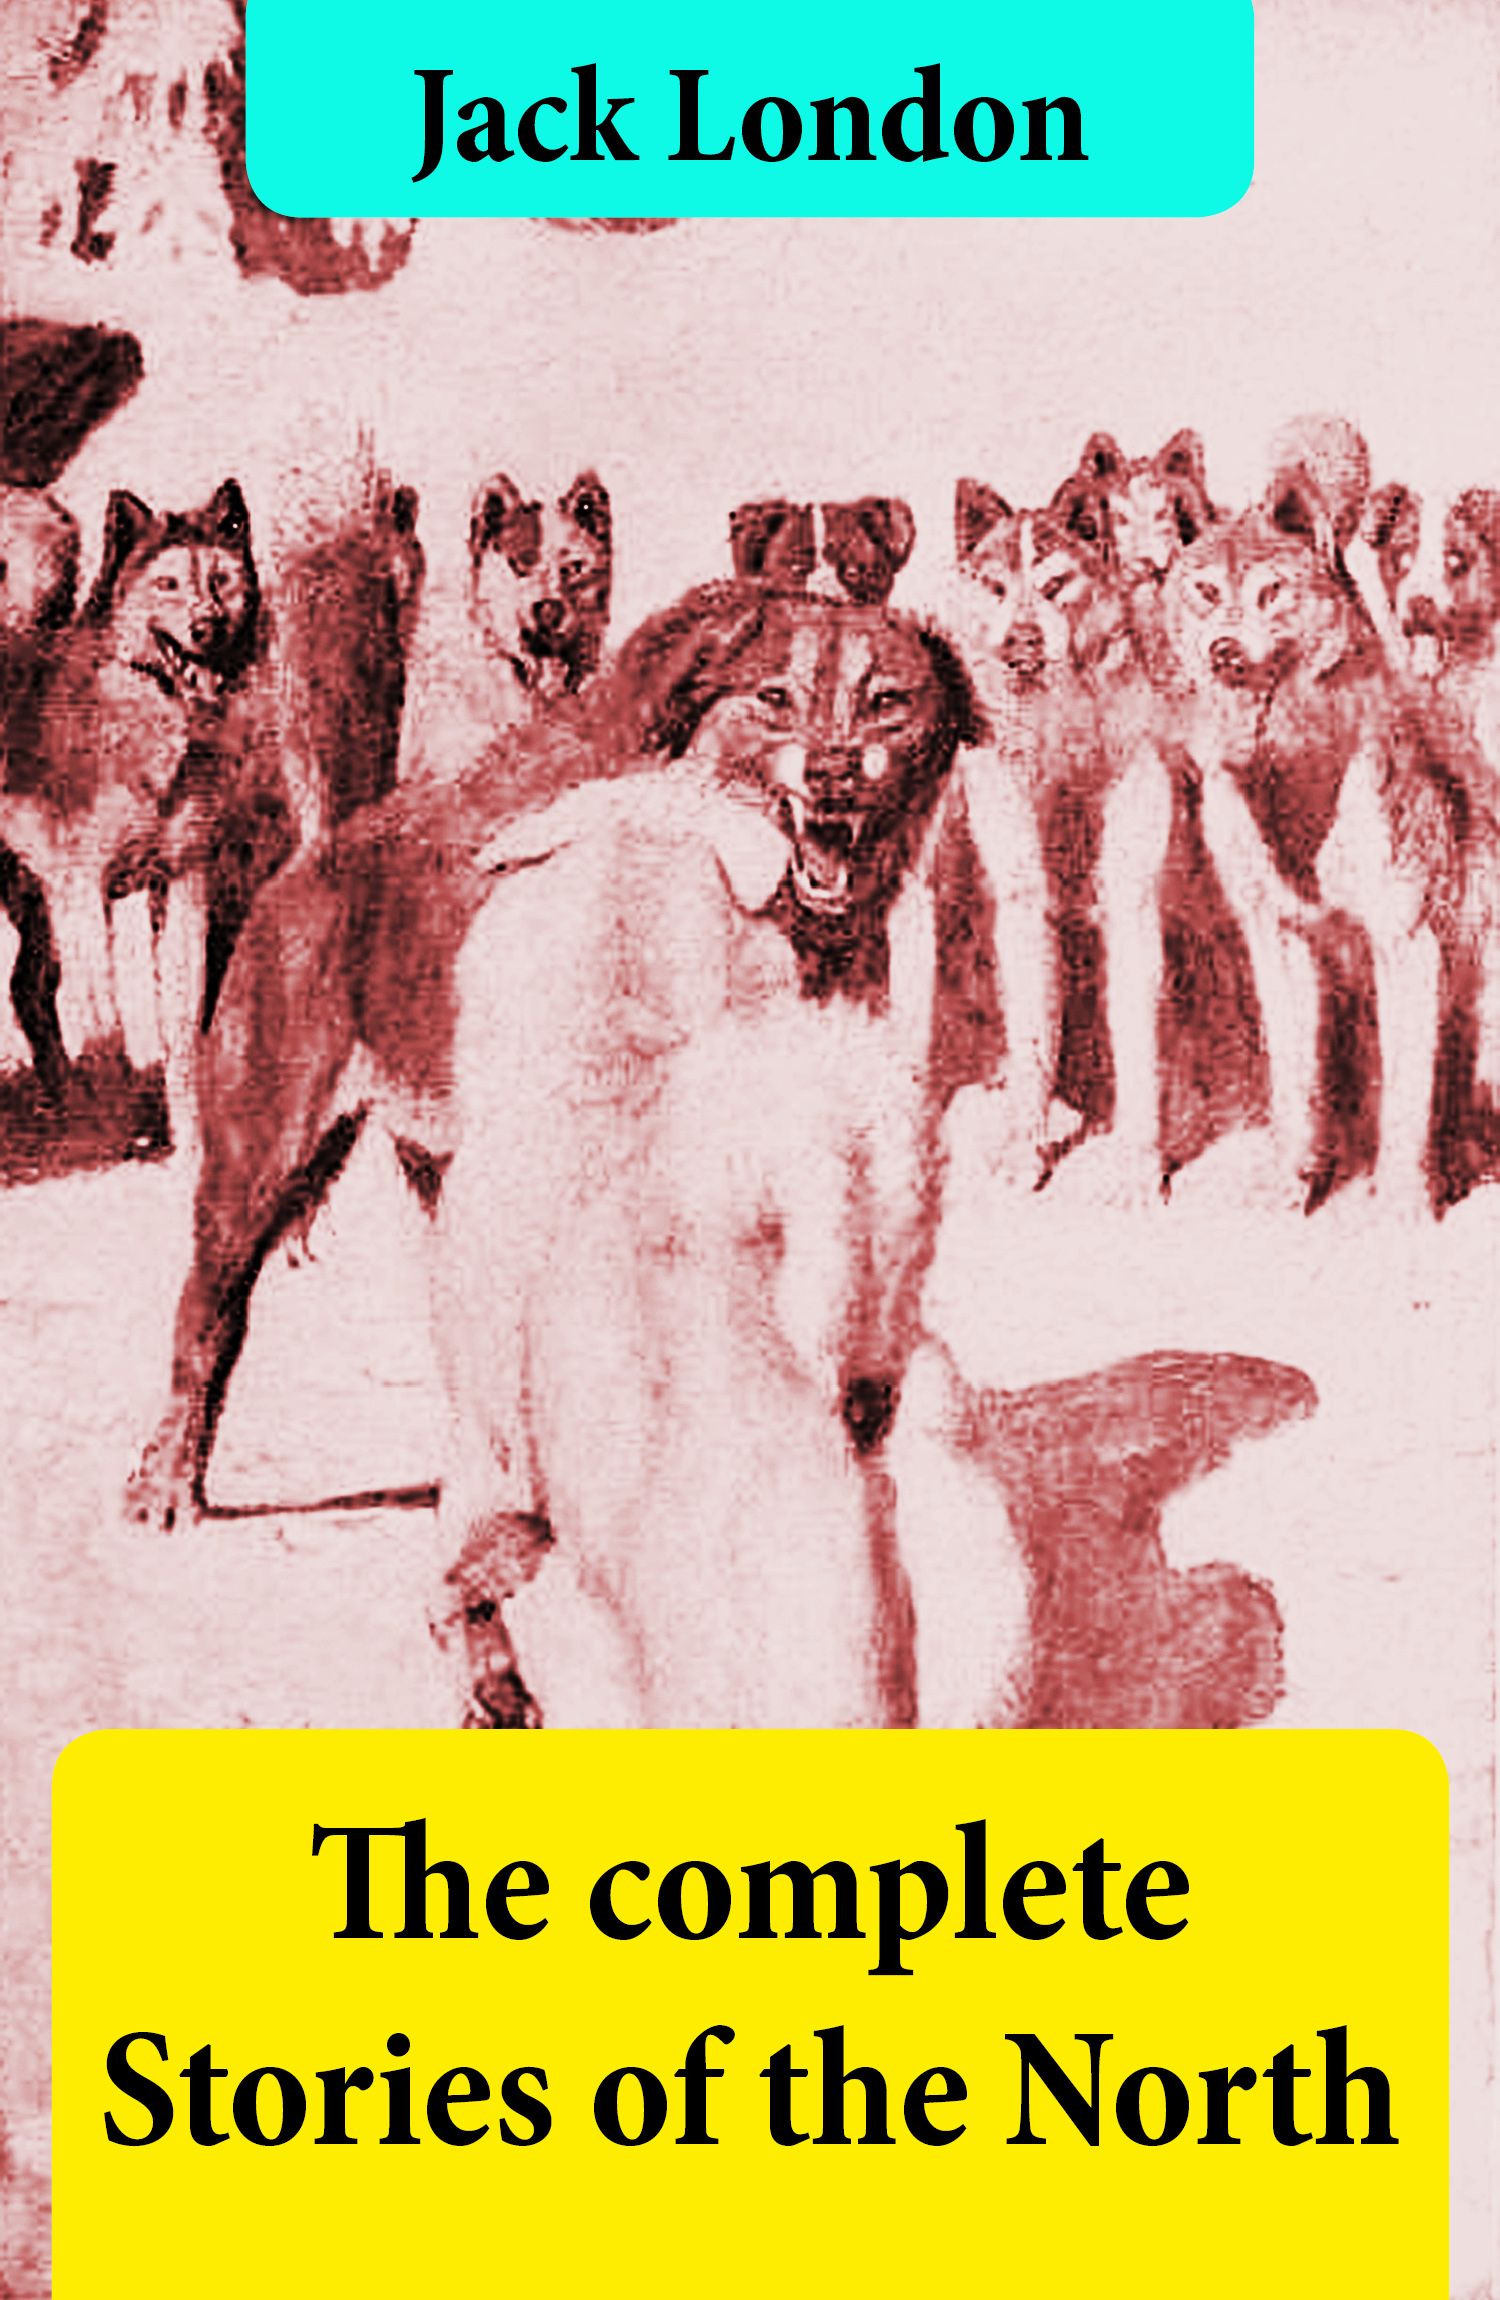 The complete Stories of the North